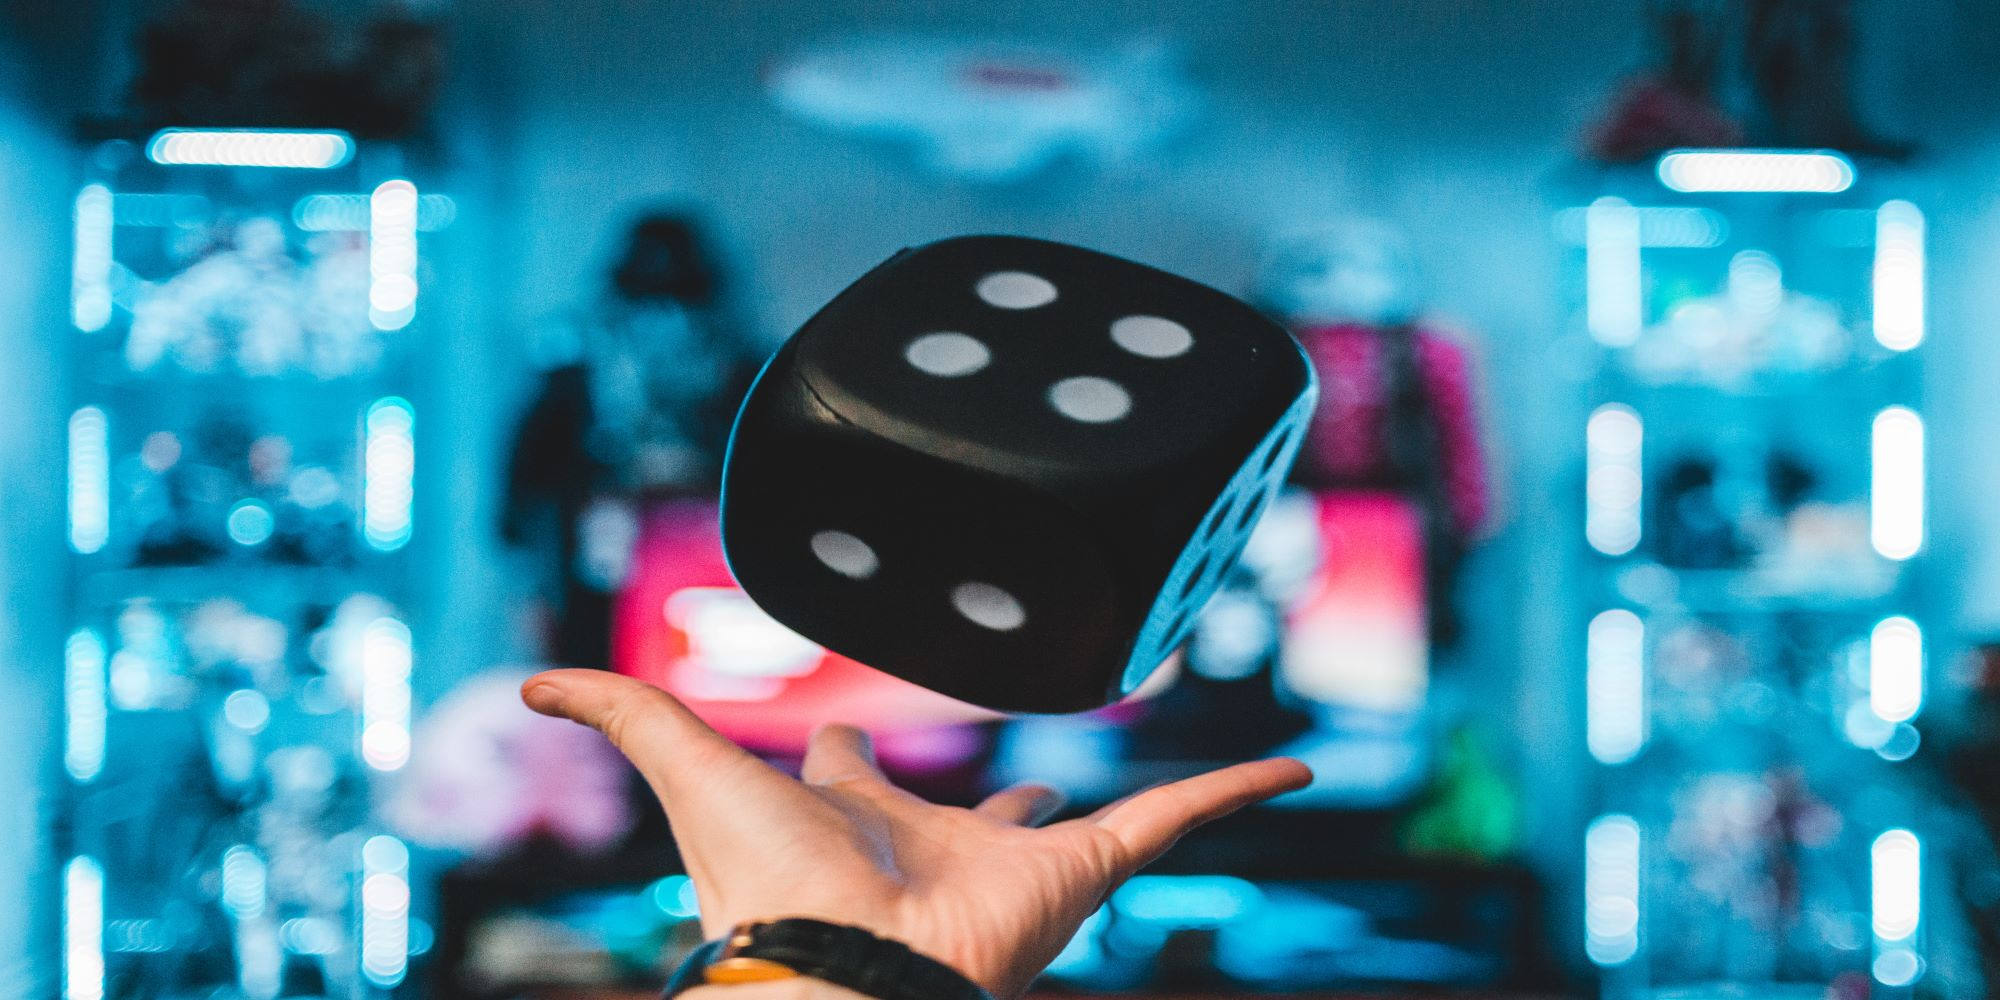 International Marketing News: Gamification a Potential Driver for Business Growth